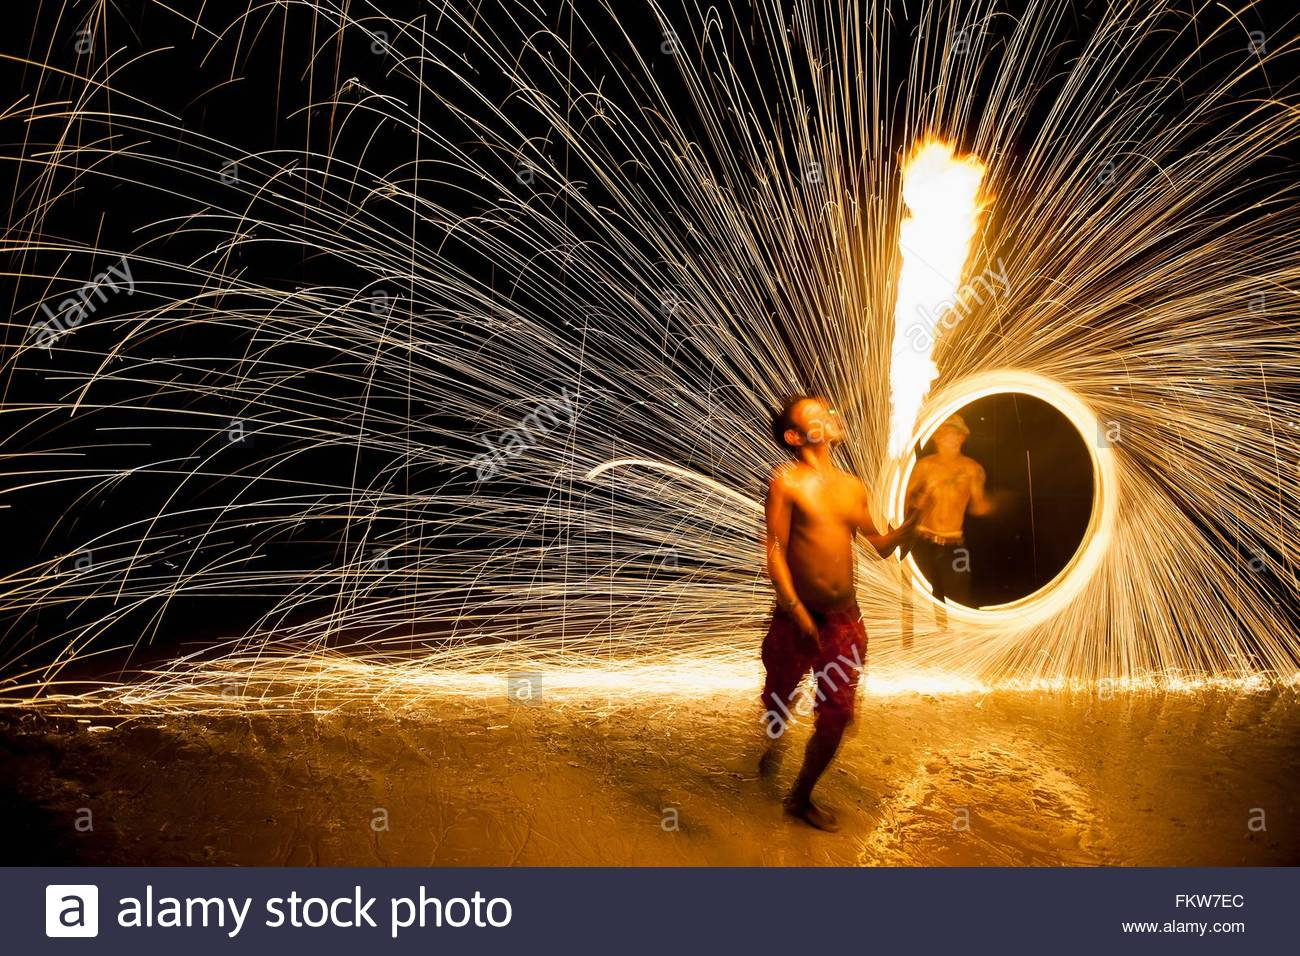 Young man displaying a fire poi show on the beach, Koh Samet, Thailand - Stock Image